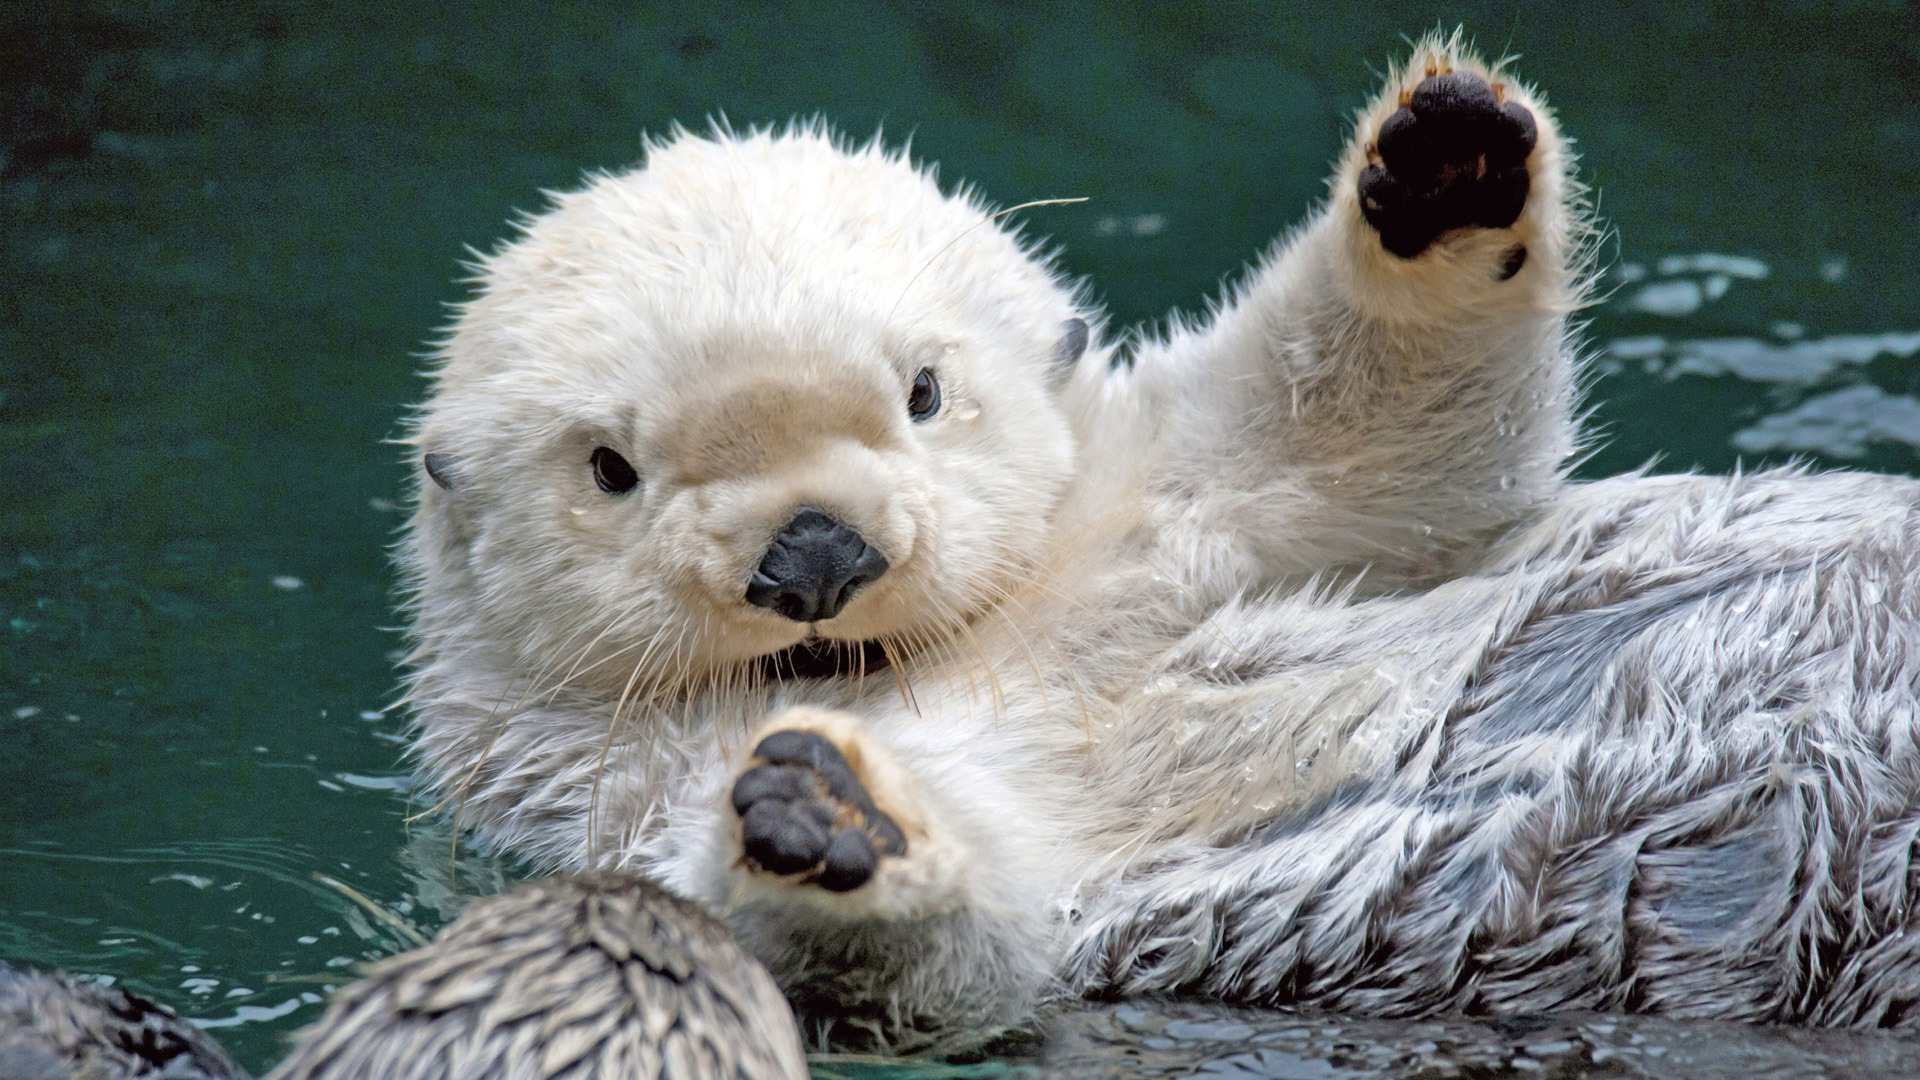 Sea Otter Desktop HD Wallpapers-2